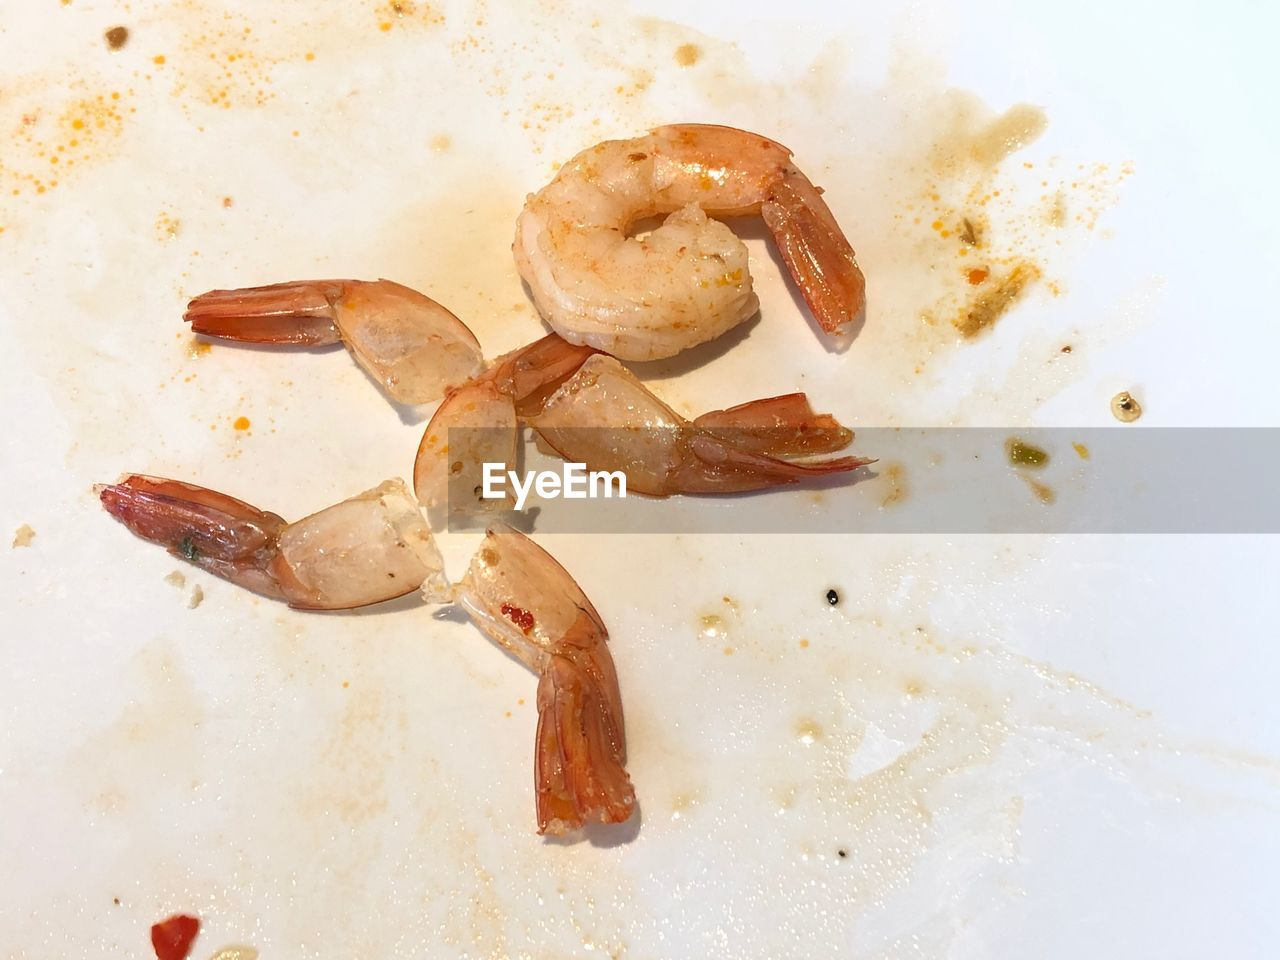 food and drink, food, close-up, directly above, indoors, still life, no people, high angle view, freshness, white background, leftovers, seafood, crab, ready-to-eat, plate, dirt, indulgence, studio shot, nature, animal, snack, temptation